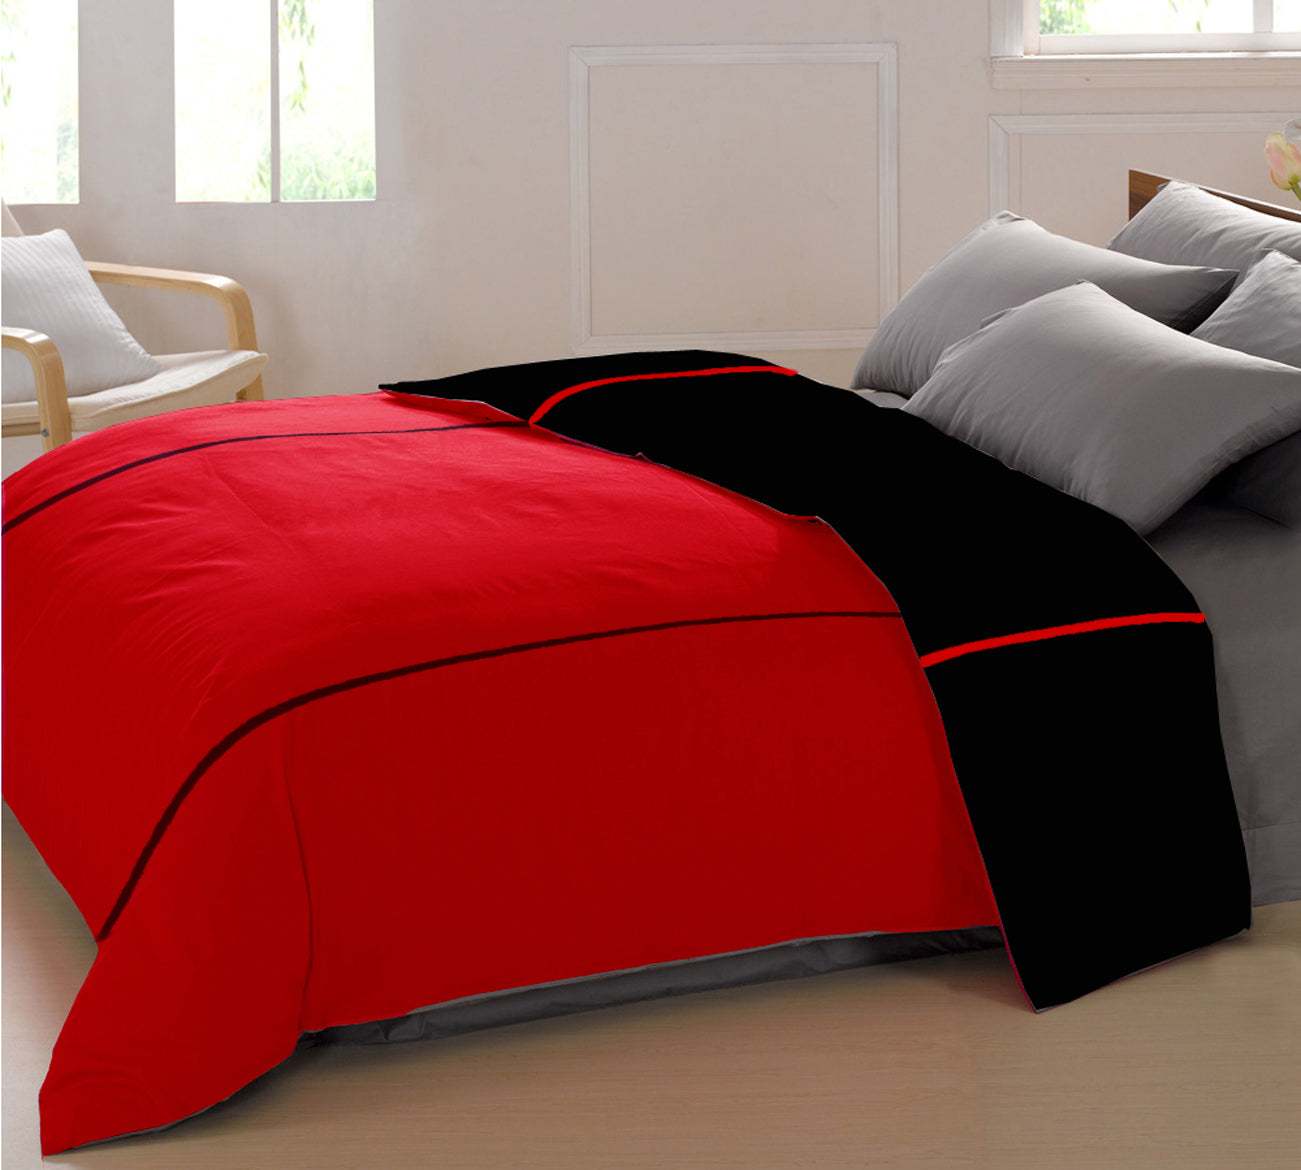 AURAVE Reversible Style Plain Black & Red 210 TC Mercerised Cotton Duvet Cover/Quilt Cover